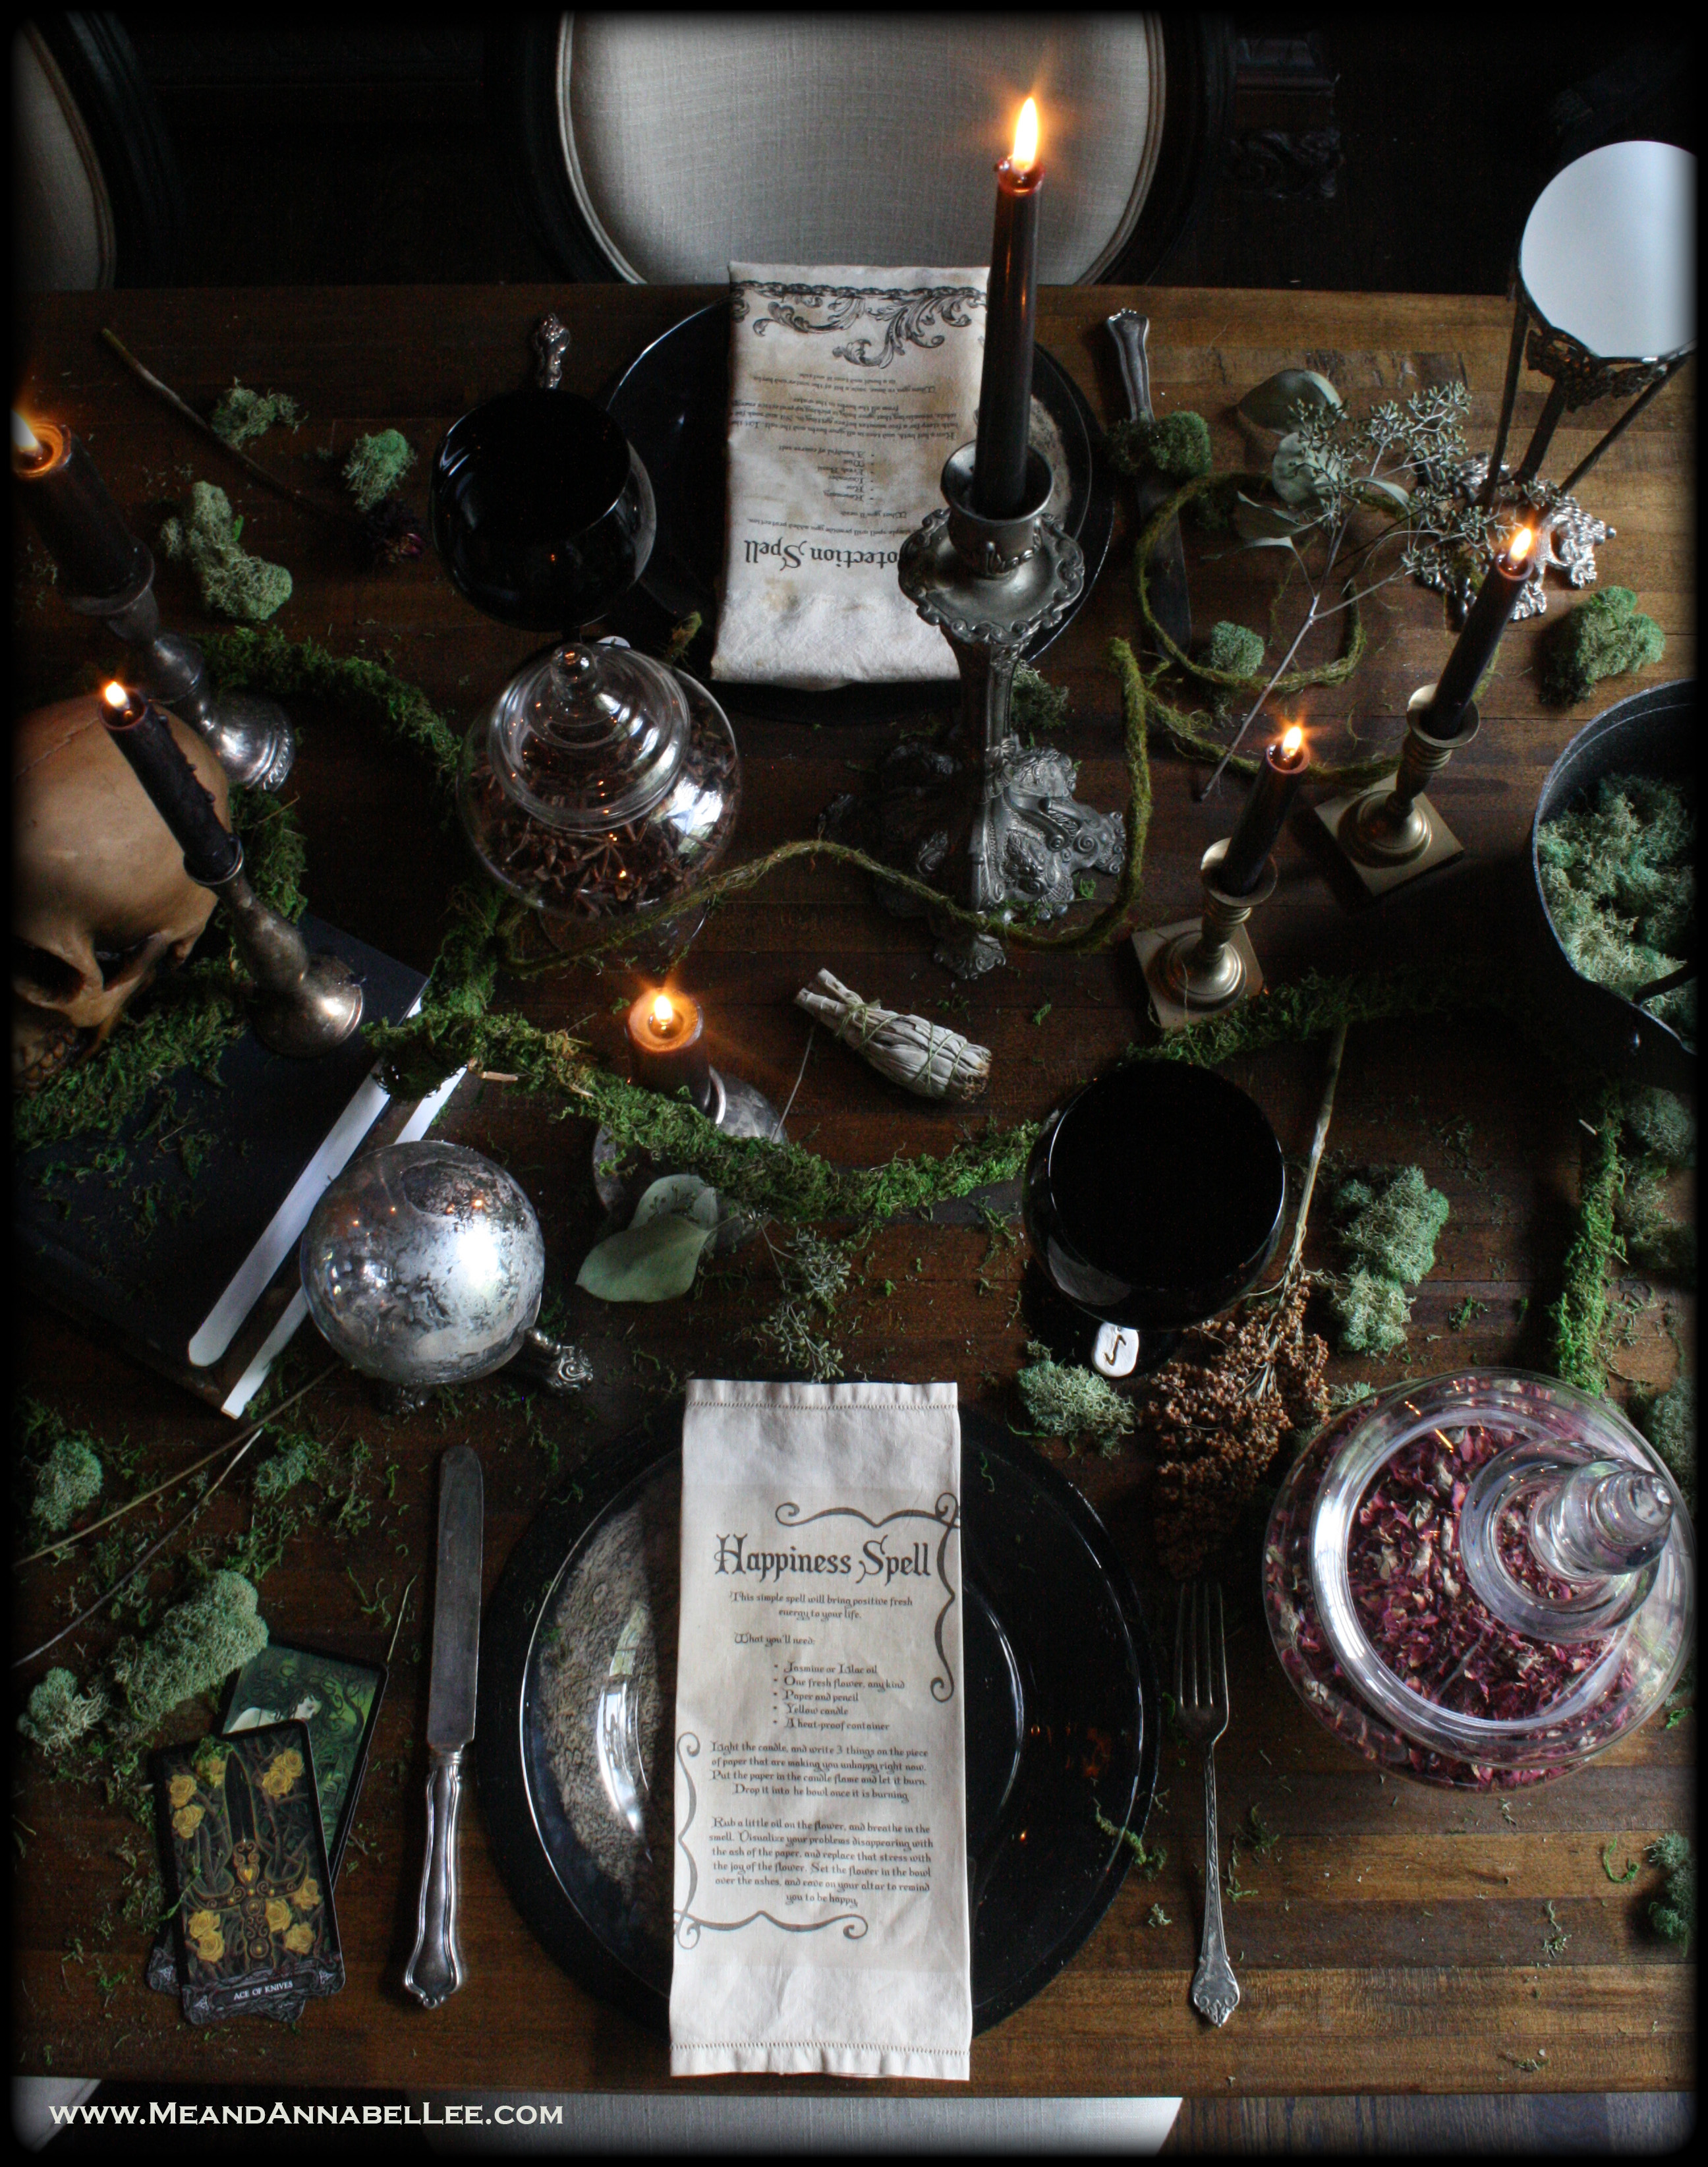 Diy Vintage Tea Stained Witches Spell Napkins Halloween Party Me And Annabel Lee